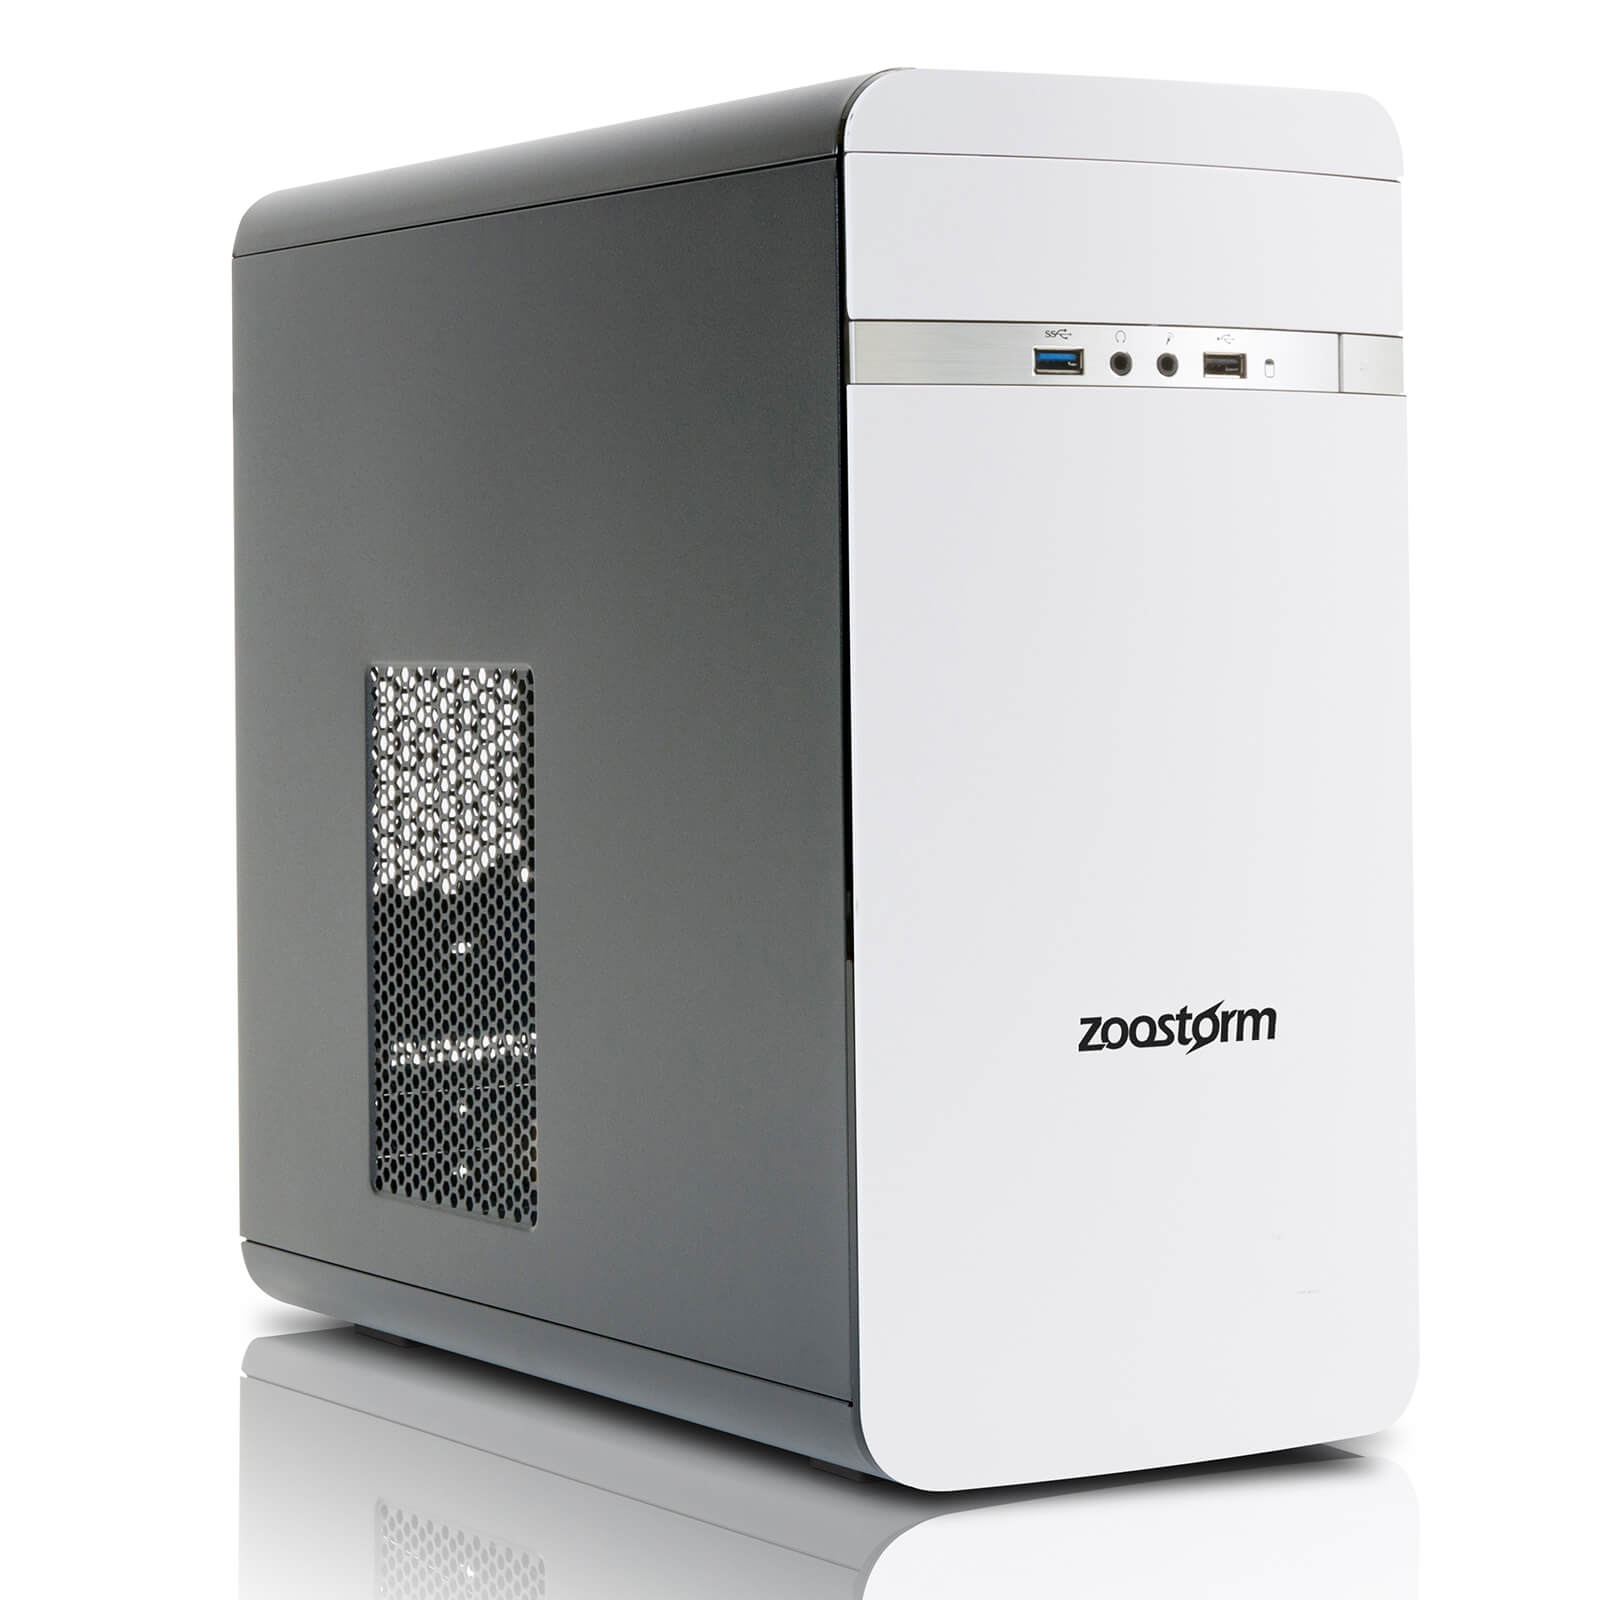 Zoostorm Evolve Desktop PC (Windows 10 Home, Intel Core i3-7100, 8GB RAM, 2TB HDD) - White